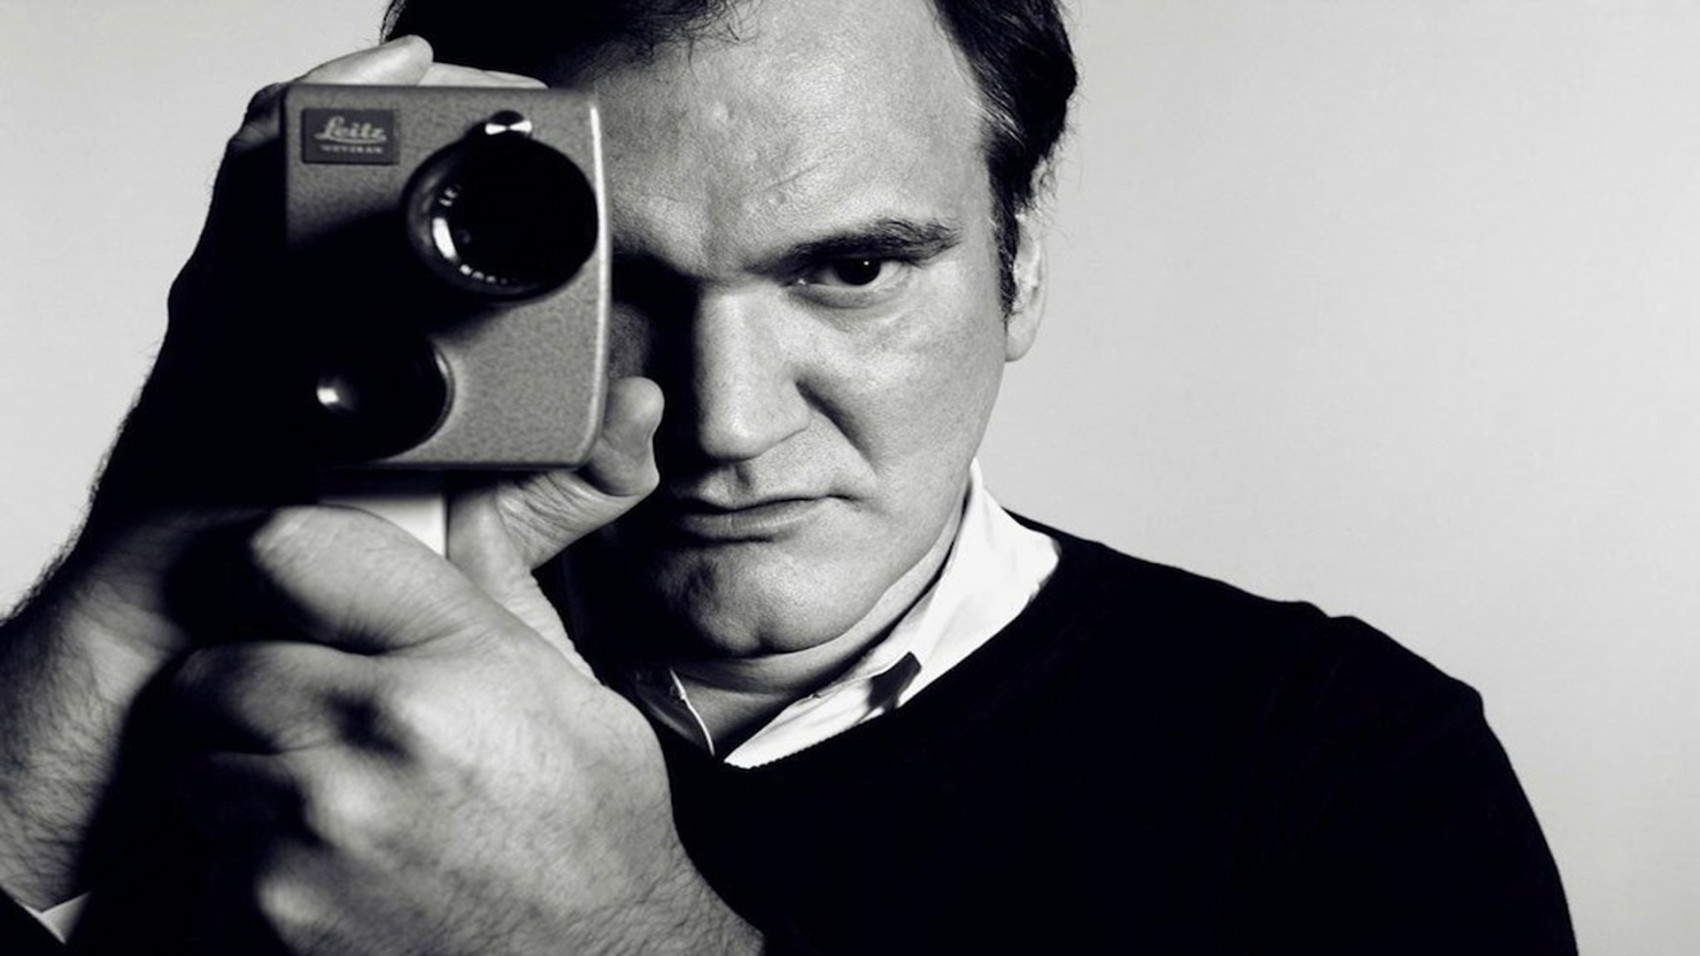 quentin tarantino cinematown.it